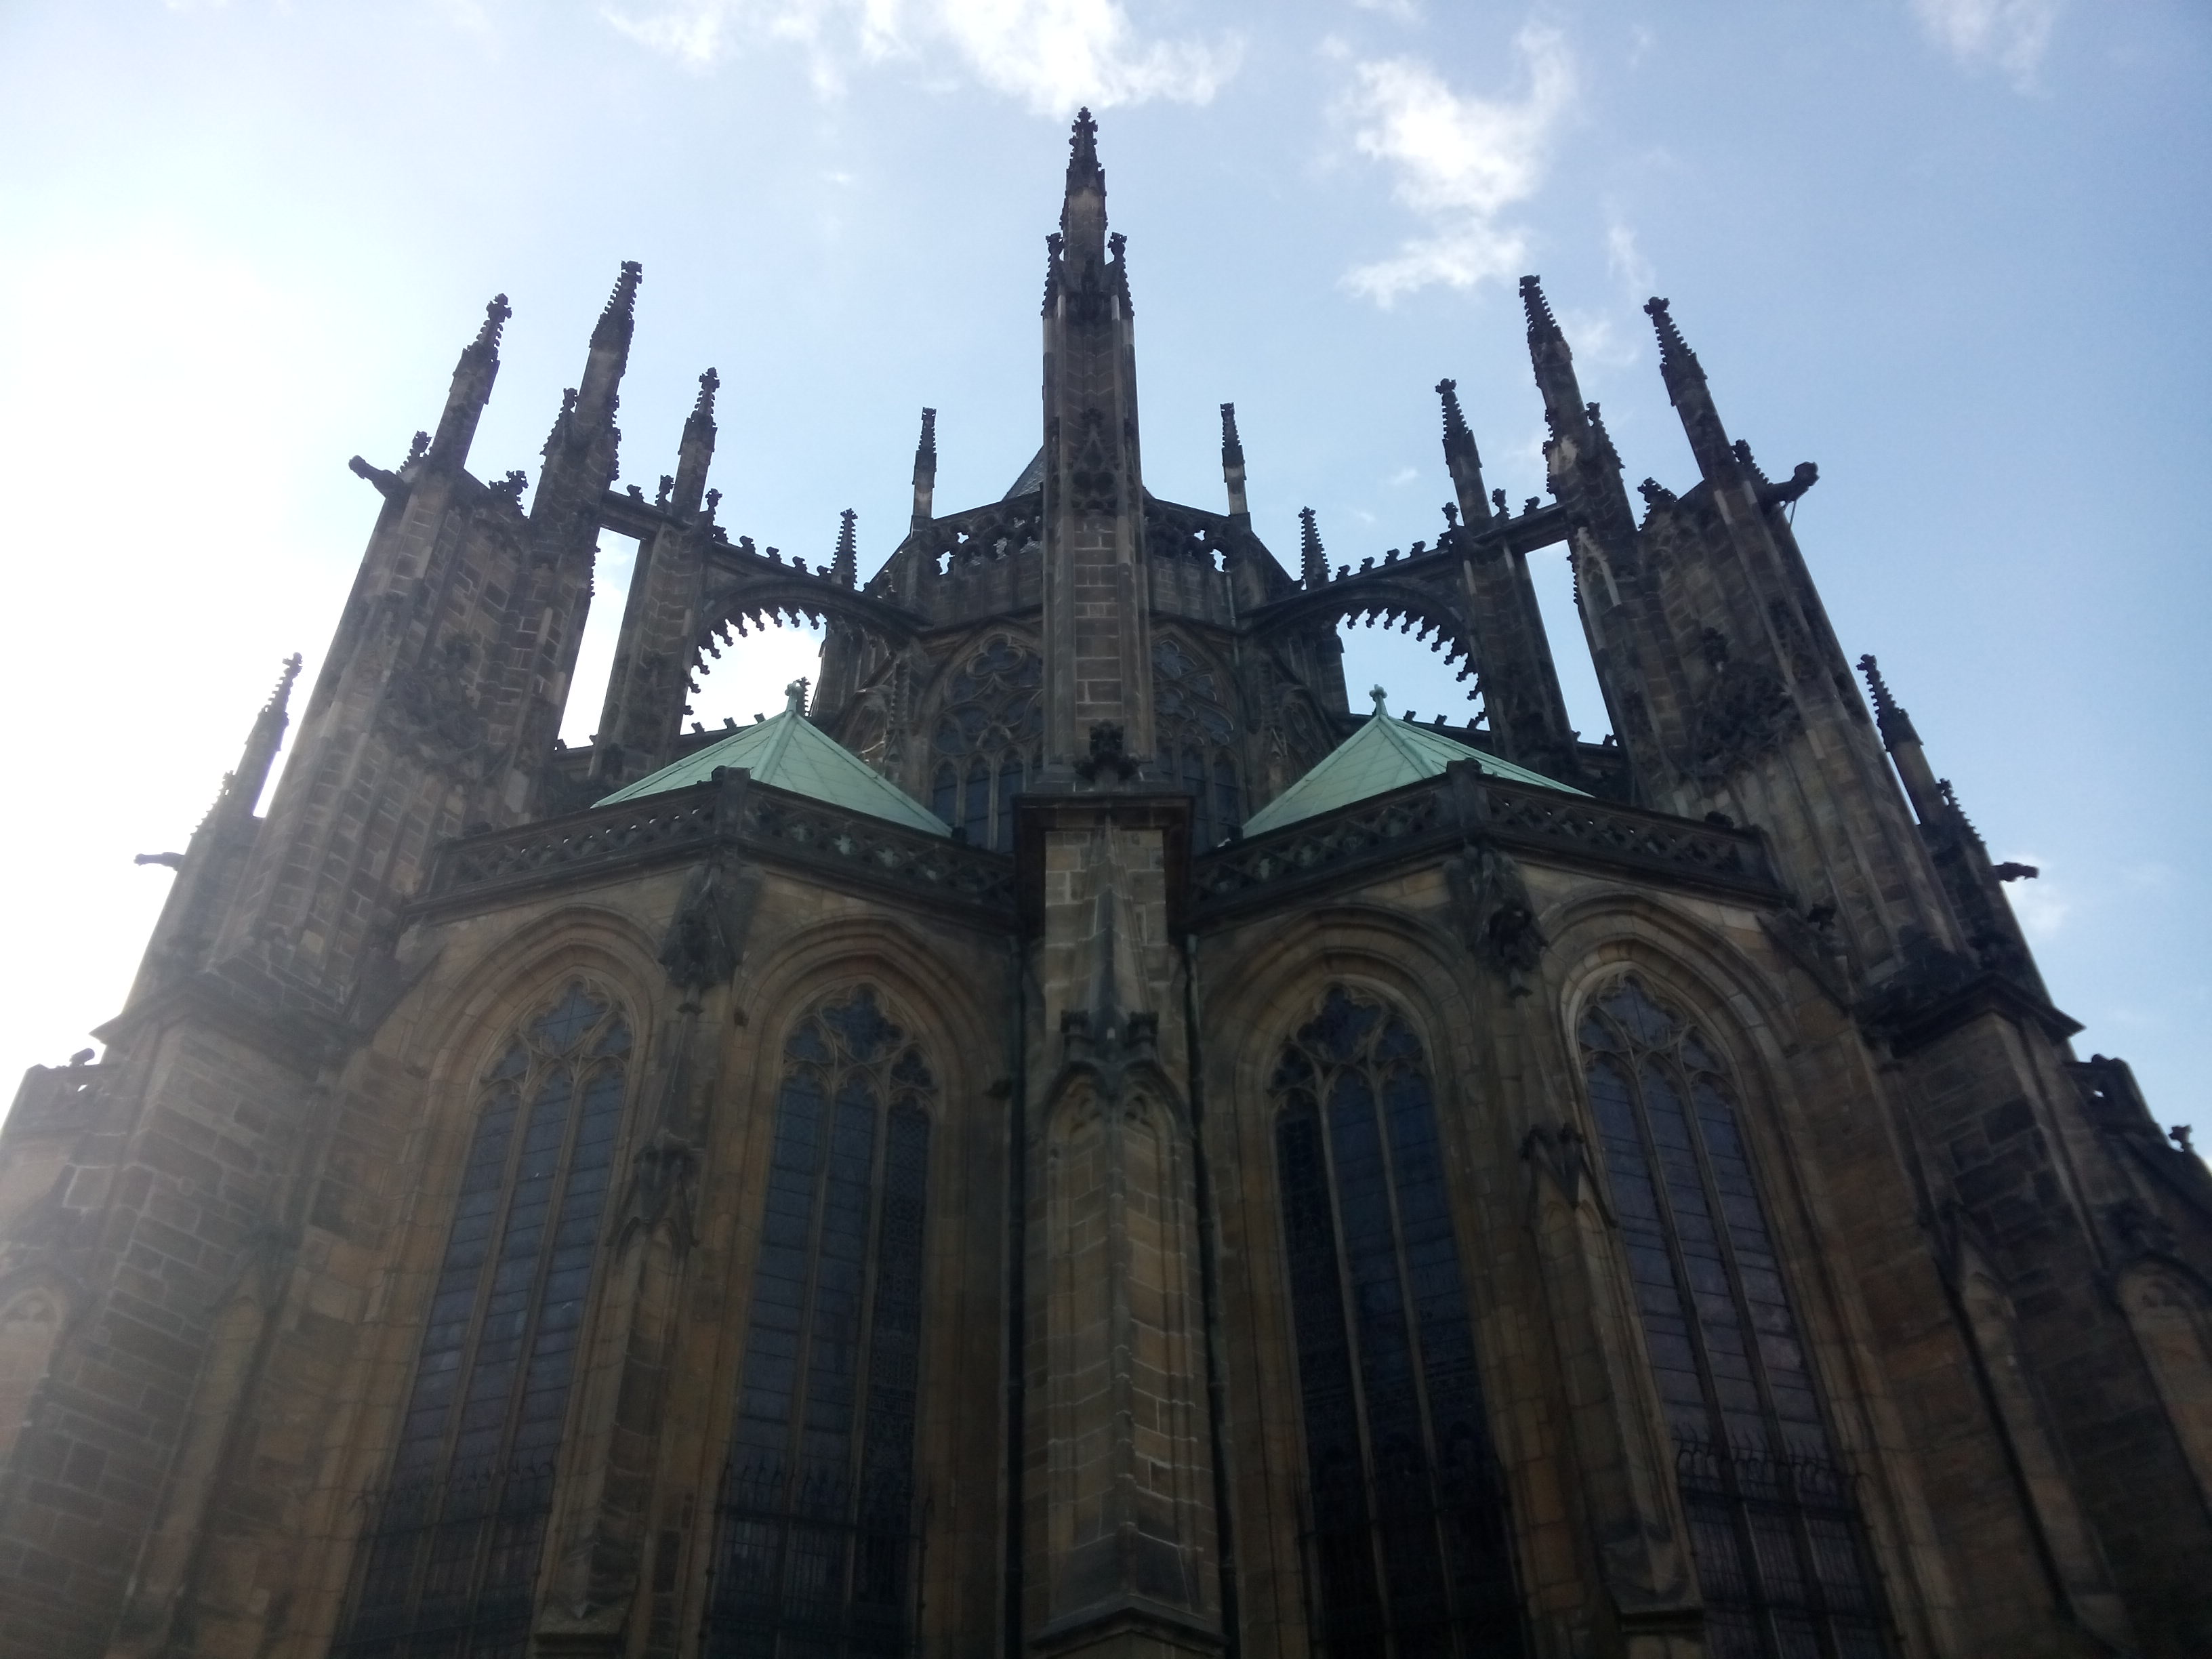 Gothic cathedral spires, tall windows, green copper roofs